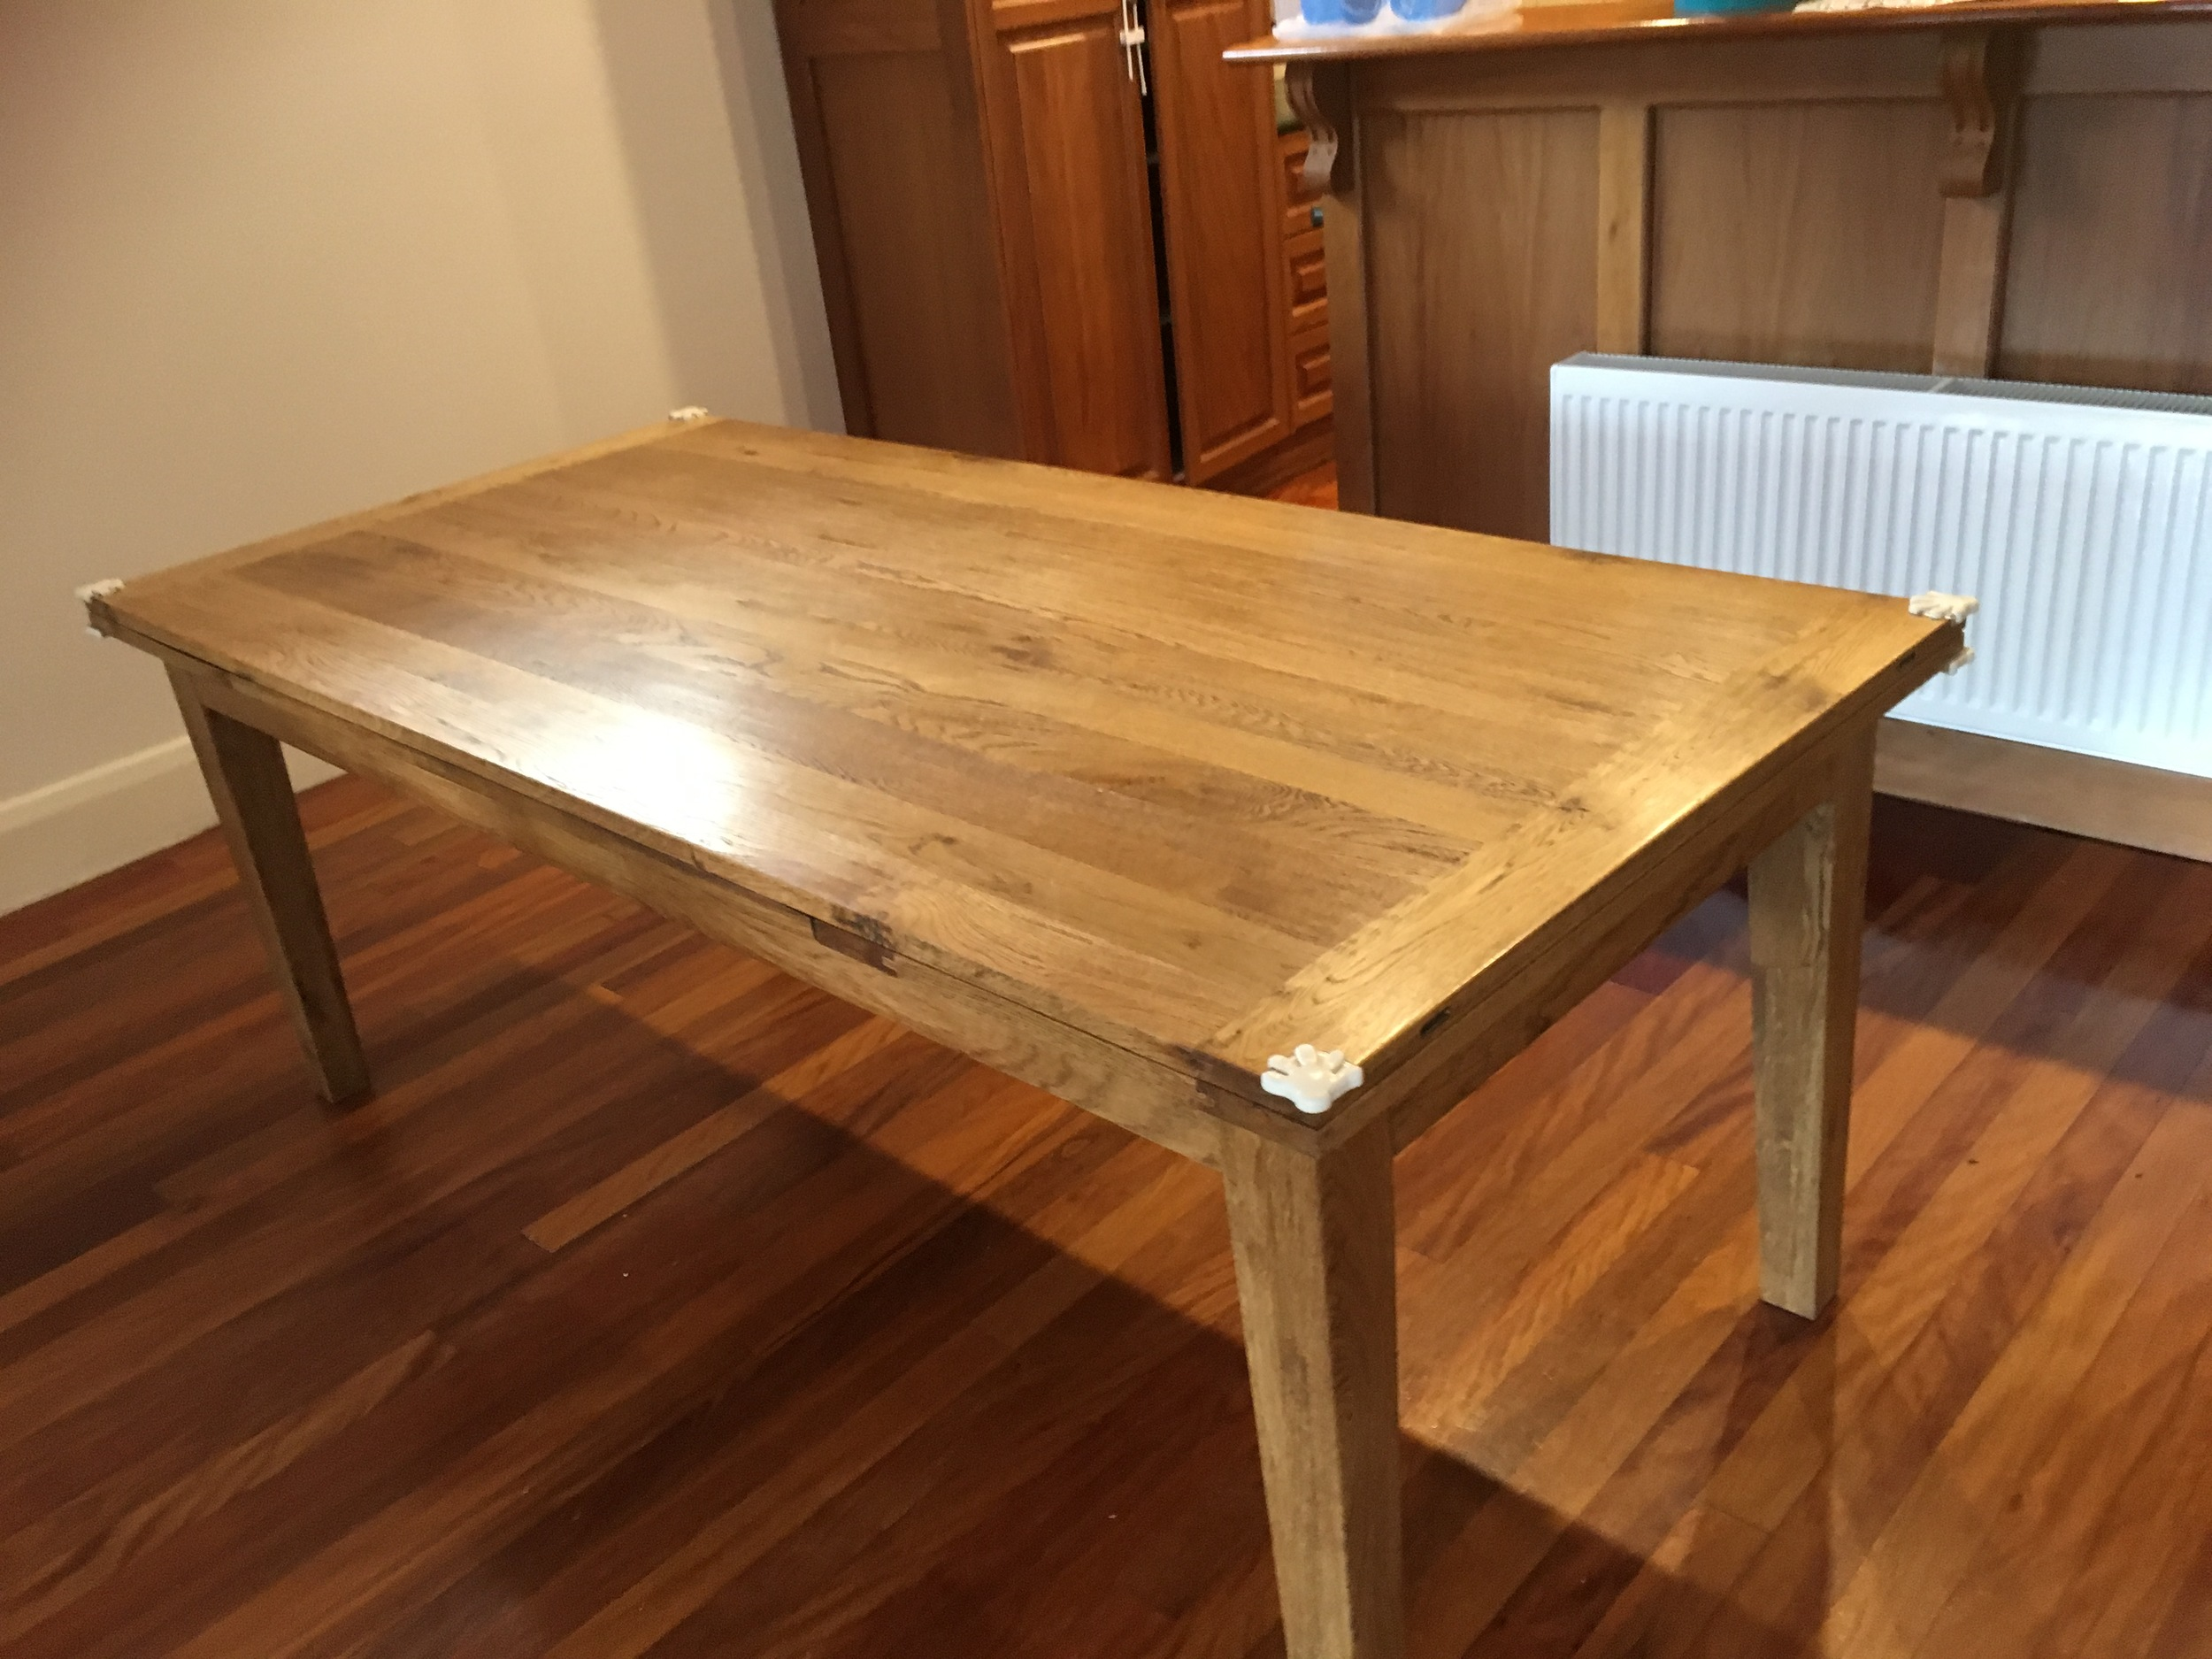 Gorgeous dining table for our new renovation - seats 8 but pulls-out to seat extras